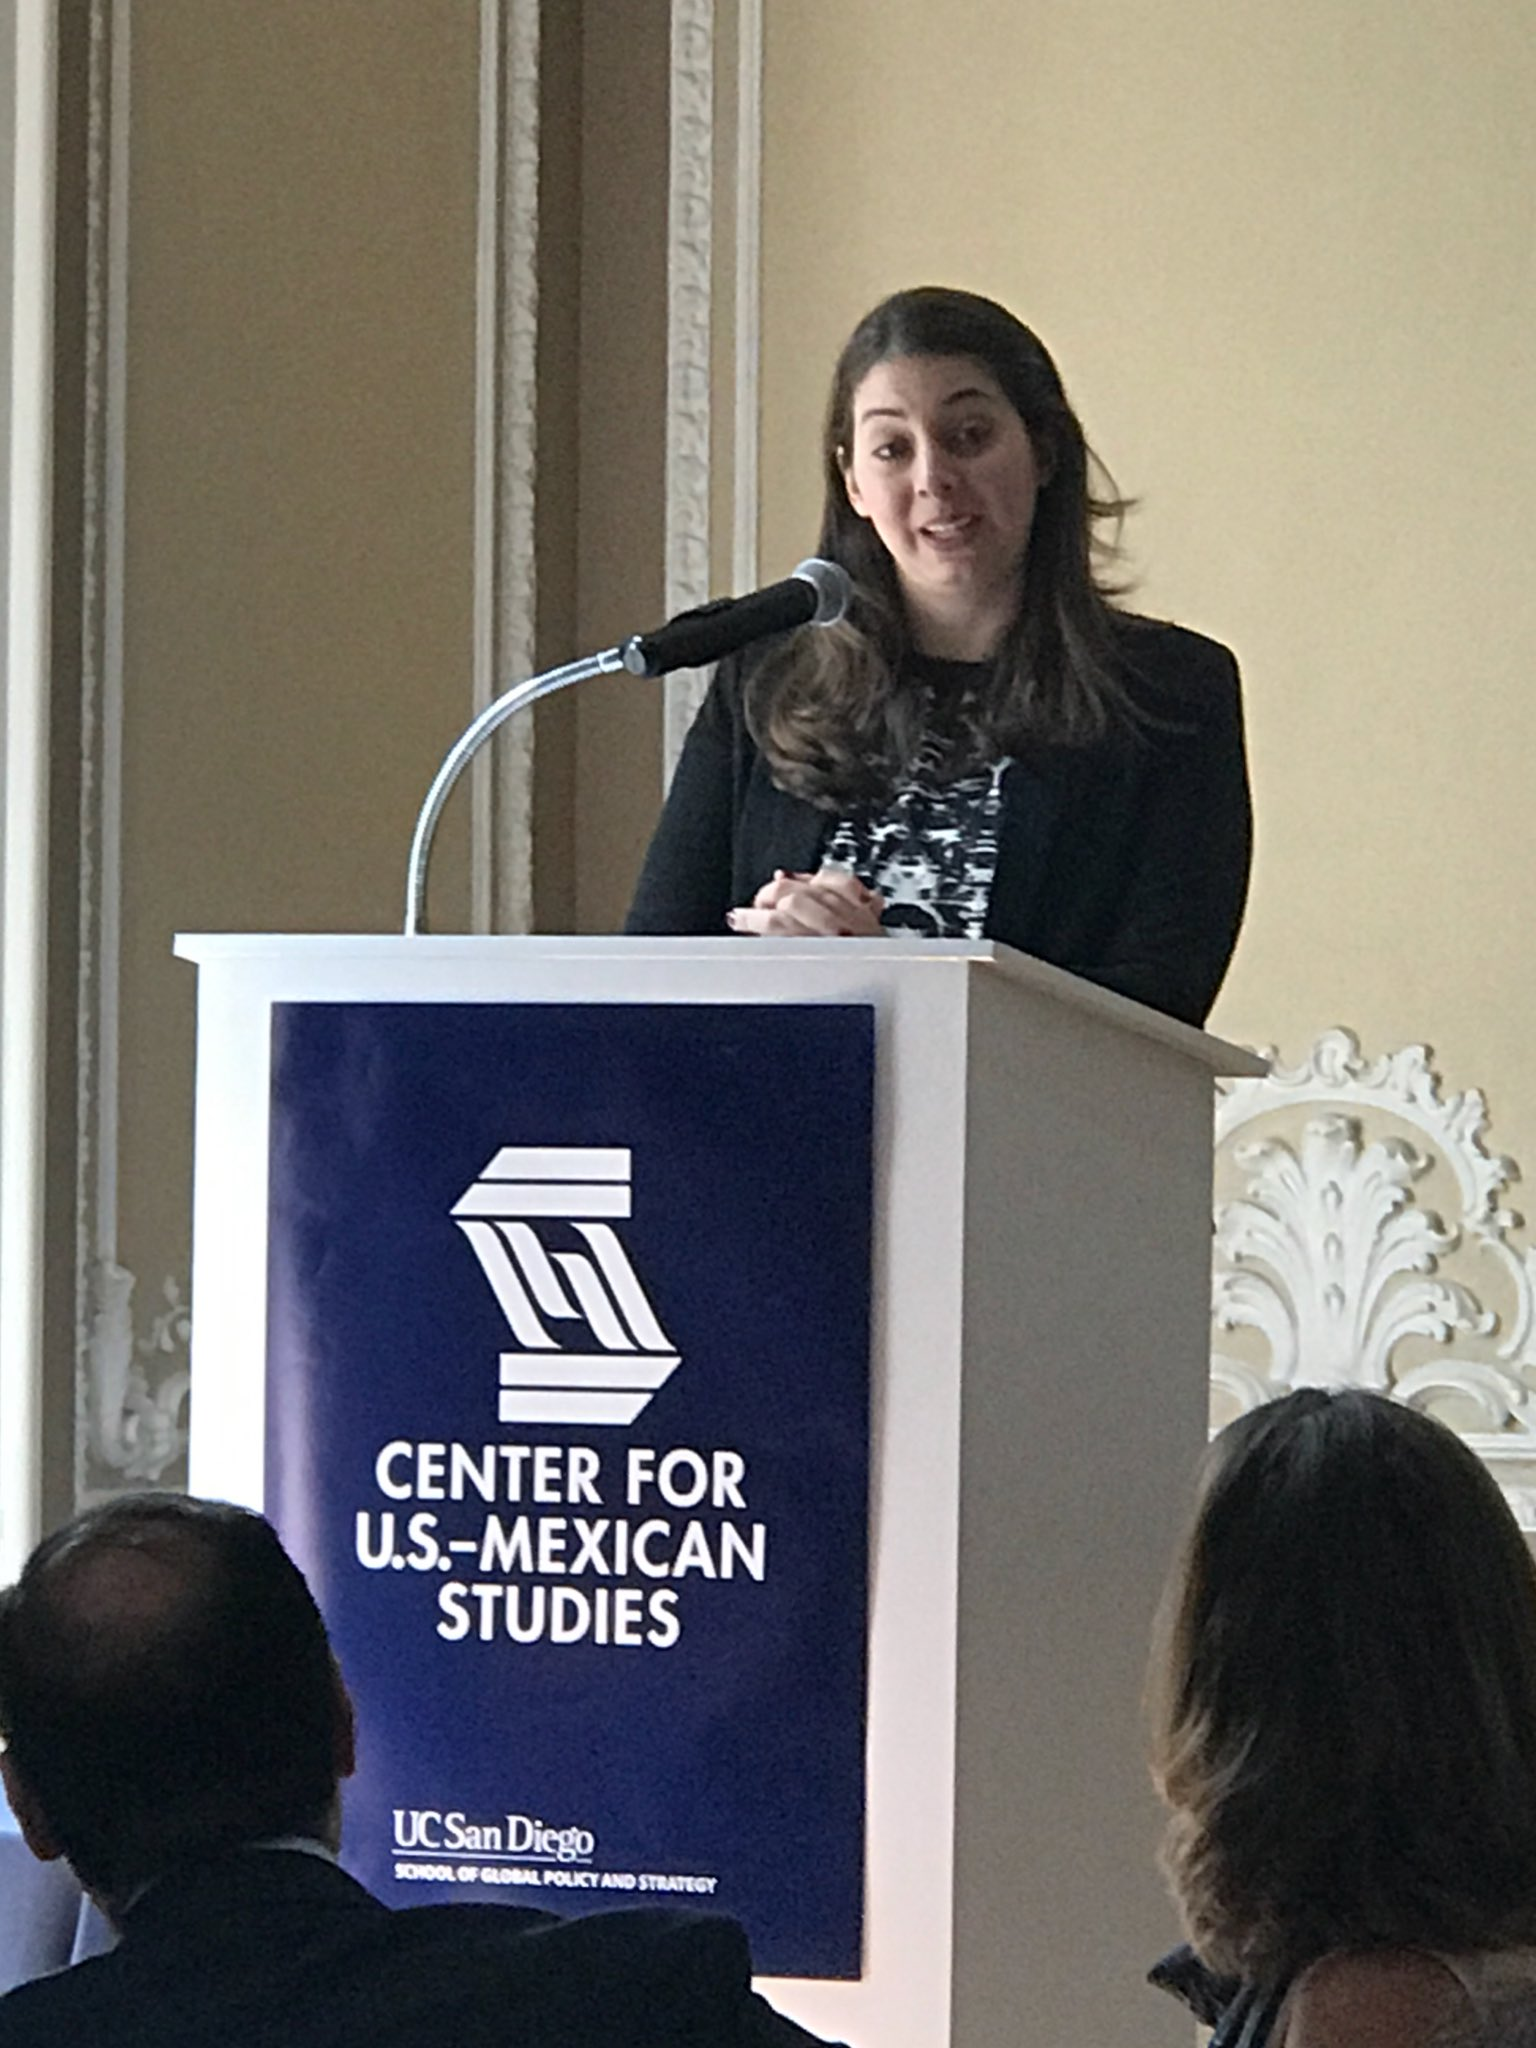 Melissa Floca opens with our #StudentsWeShare research, part of @UofCalifornia UC Mexico Initiative https://t.co/OjypT8xlbd